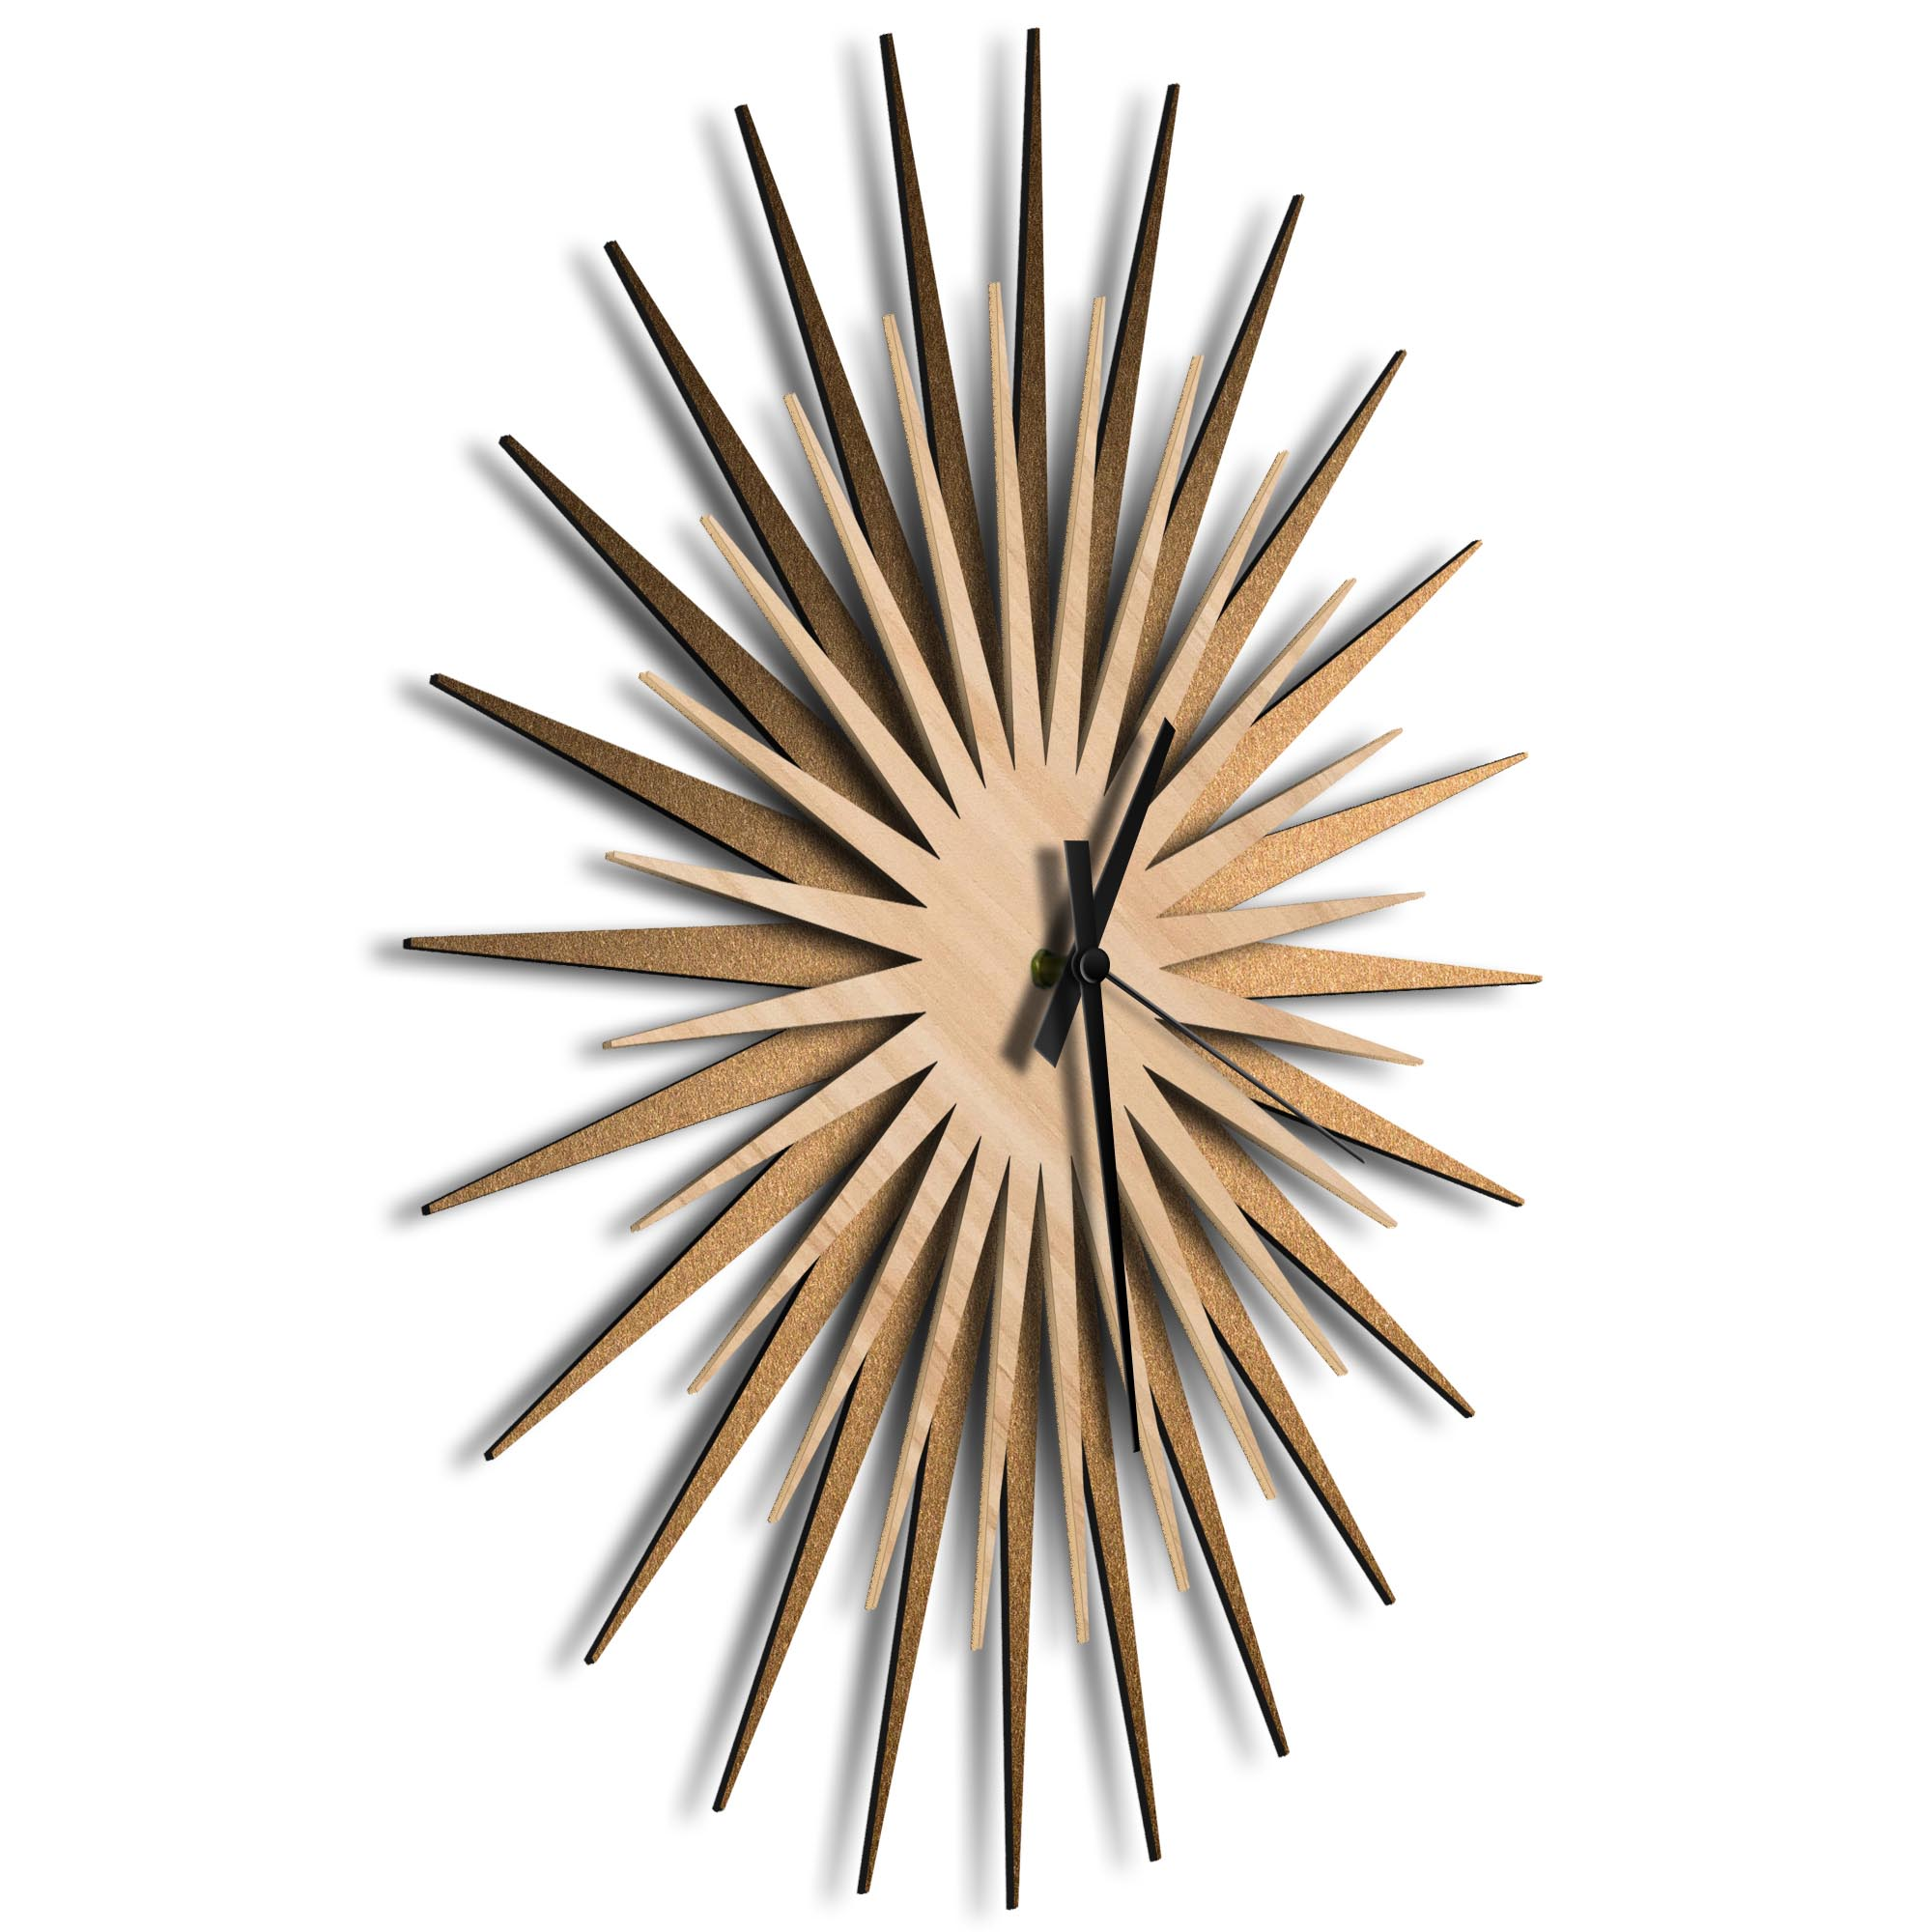 Atomic Era Clock Bronze Maple Black by Adam Schwoeppe - Mid-Century Modern Clock on Brushed Bronze Polymetal - Image 2